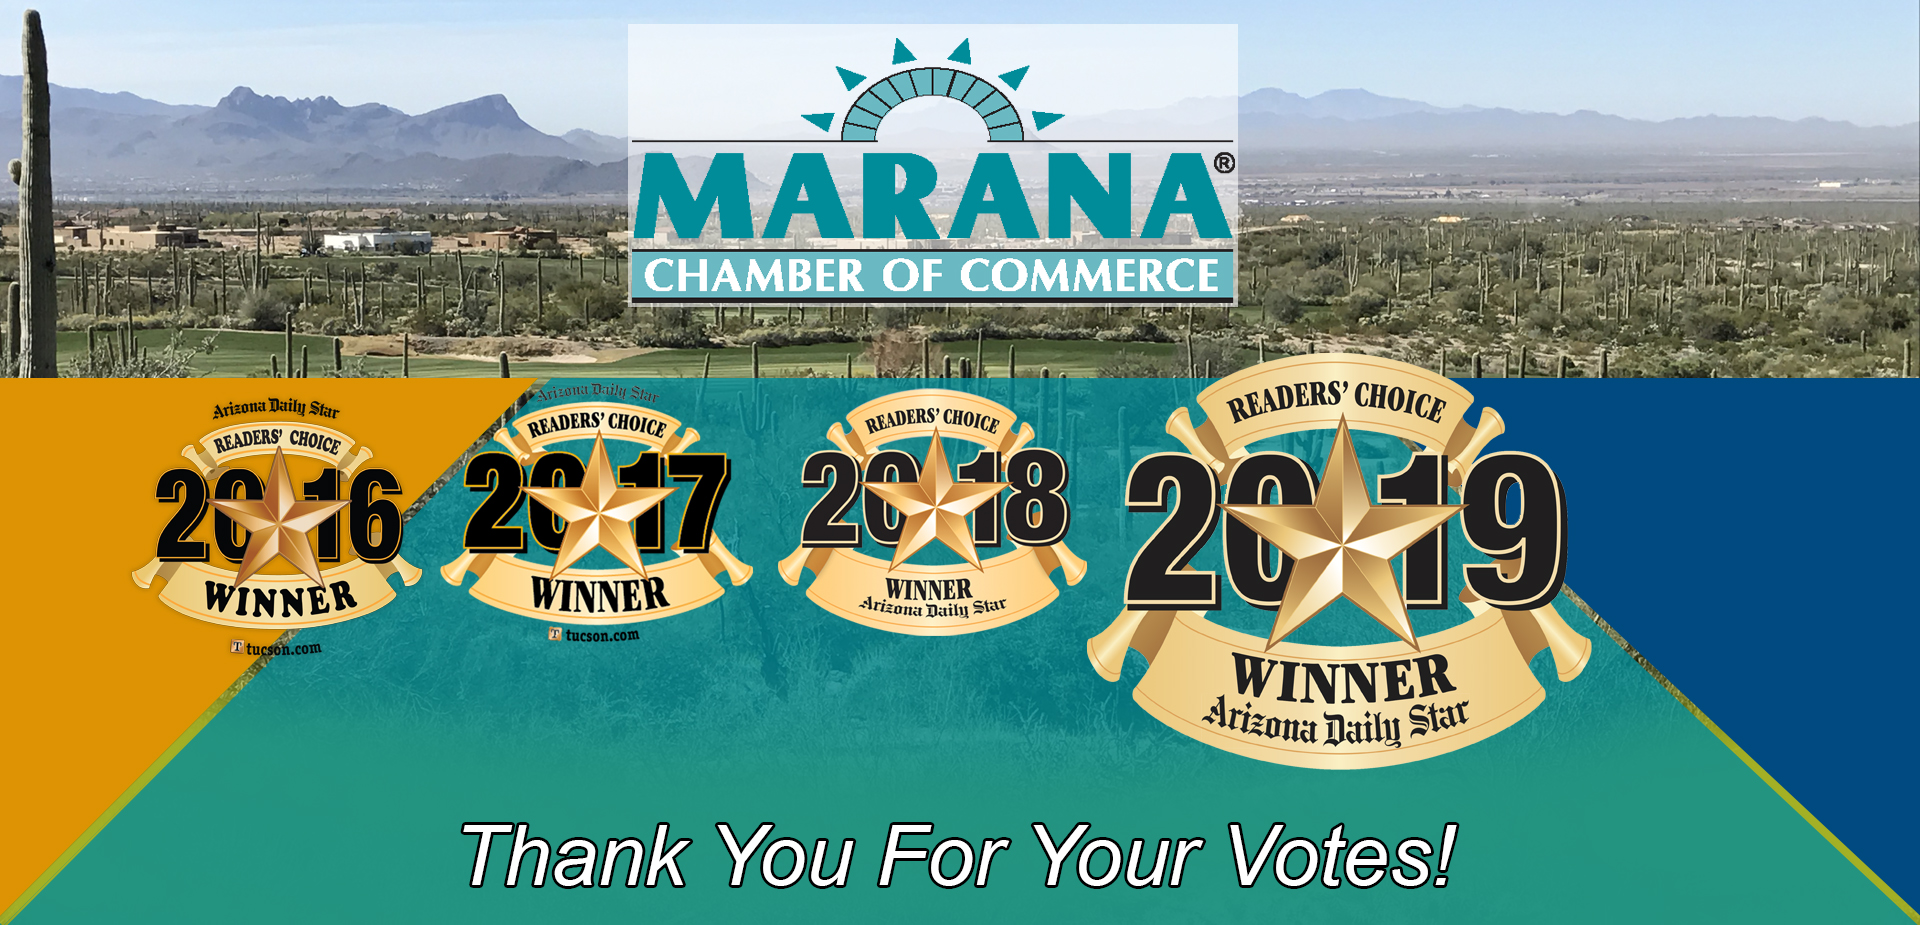 Marana Chamber of Commerce Reader's Choice 2019 Winner